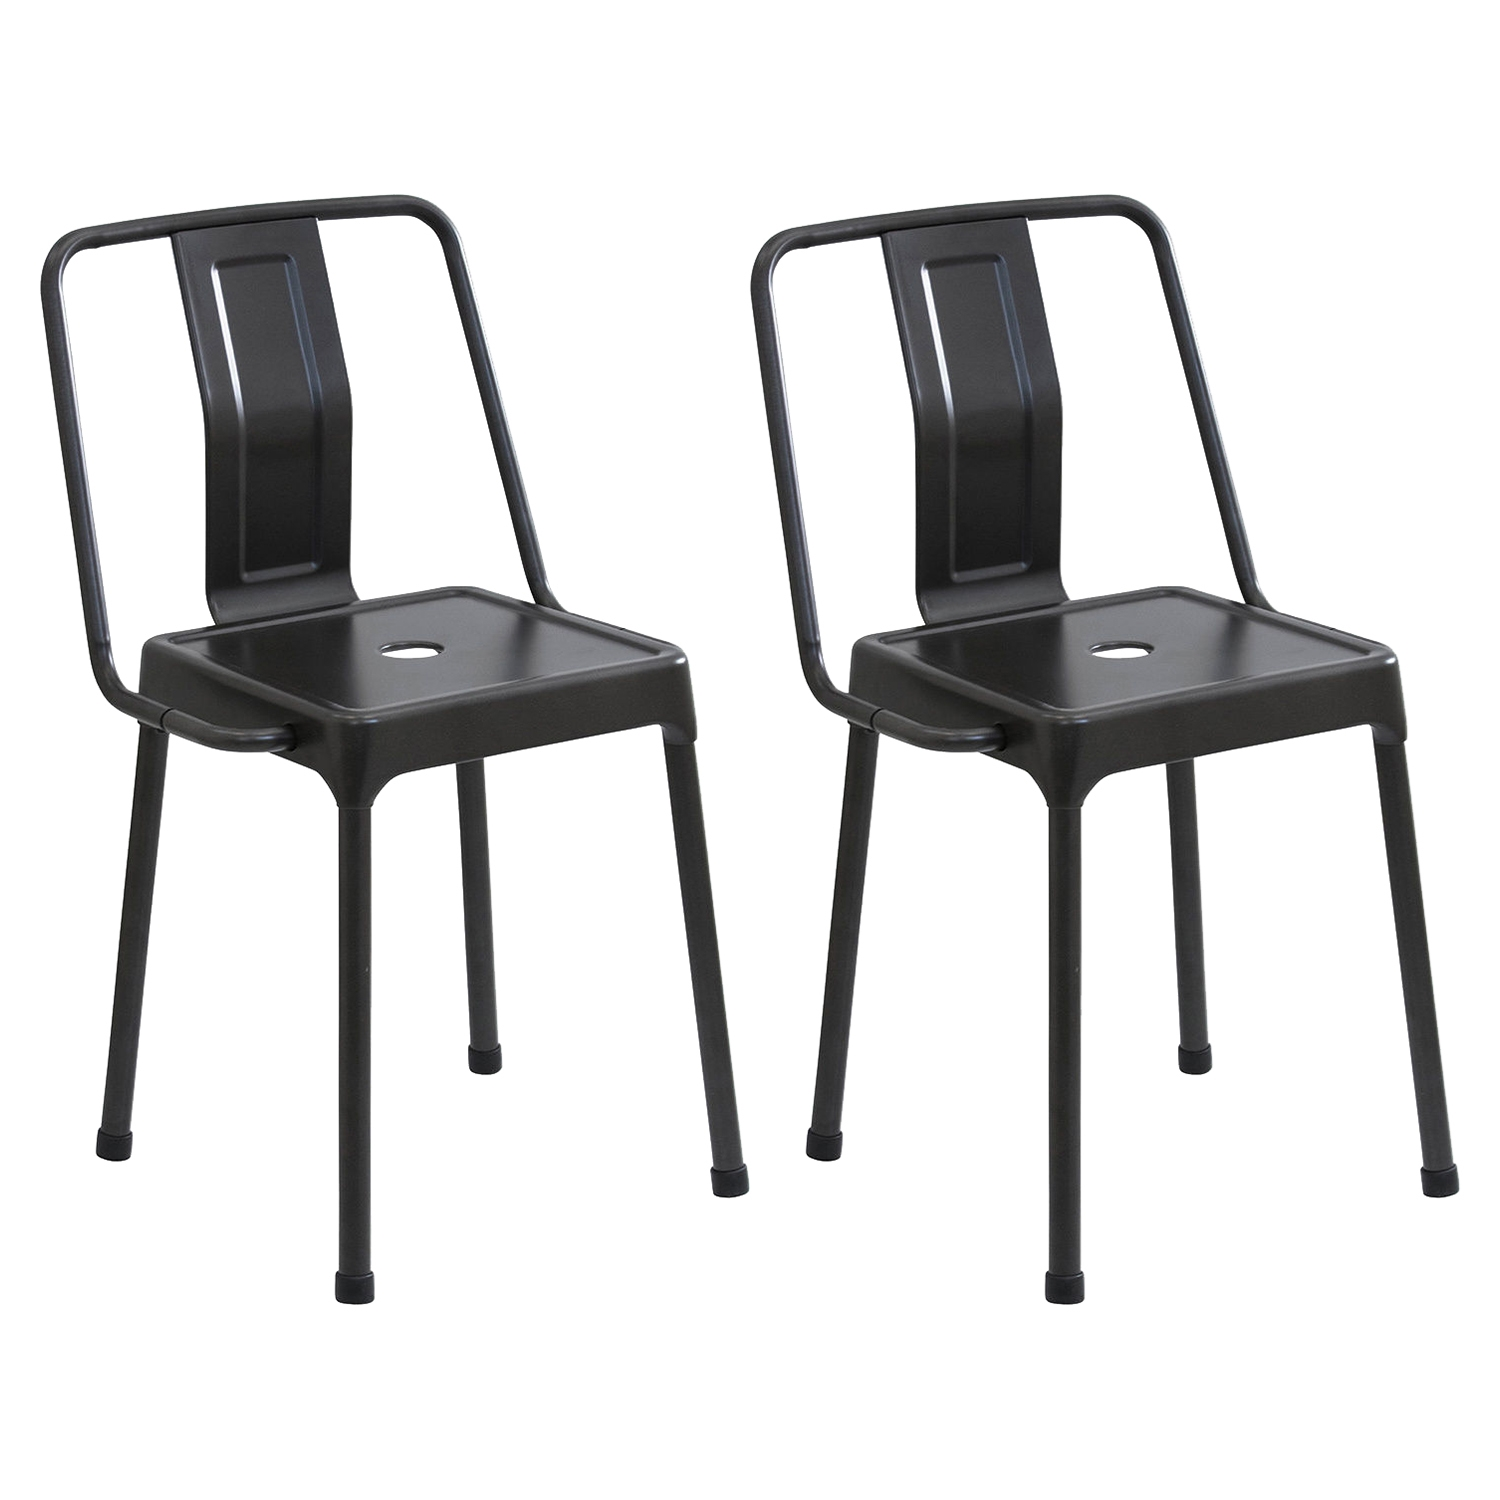 Energy Chair - Carbon Black (Set of 2)